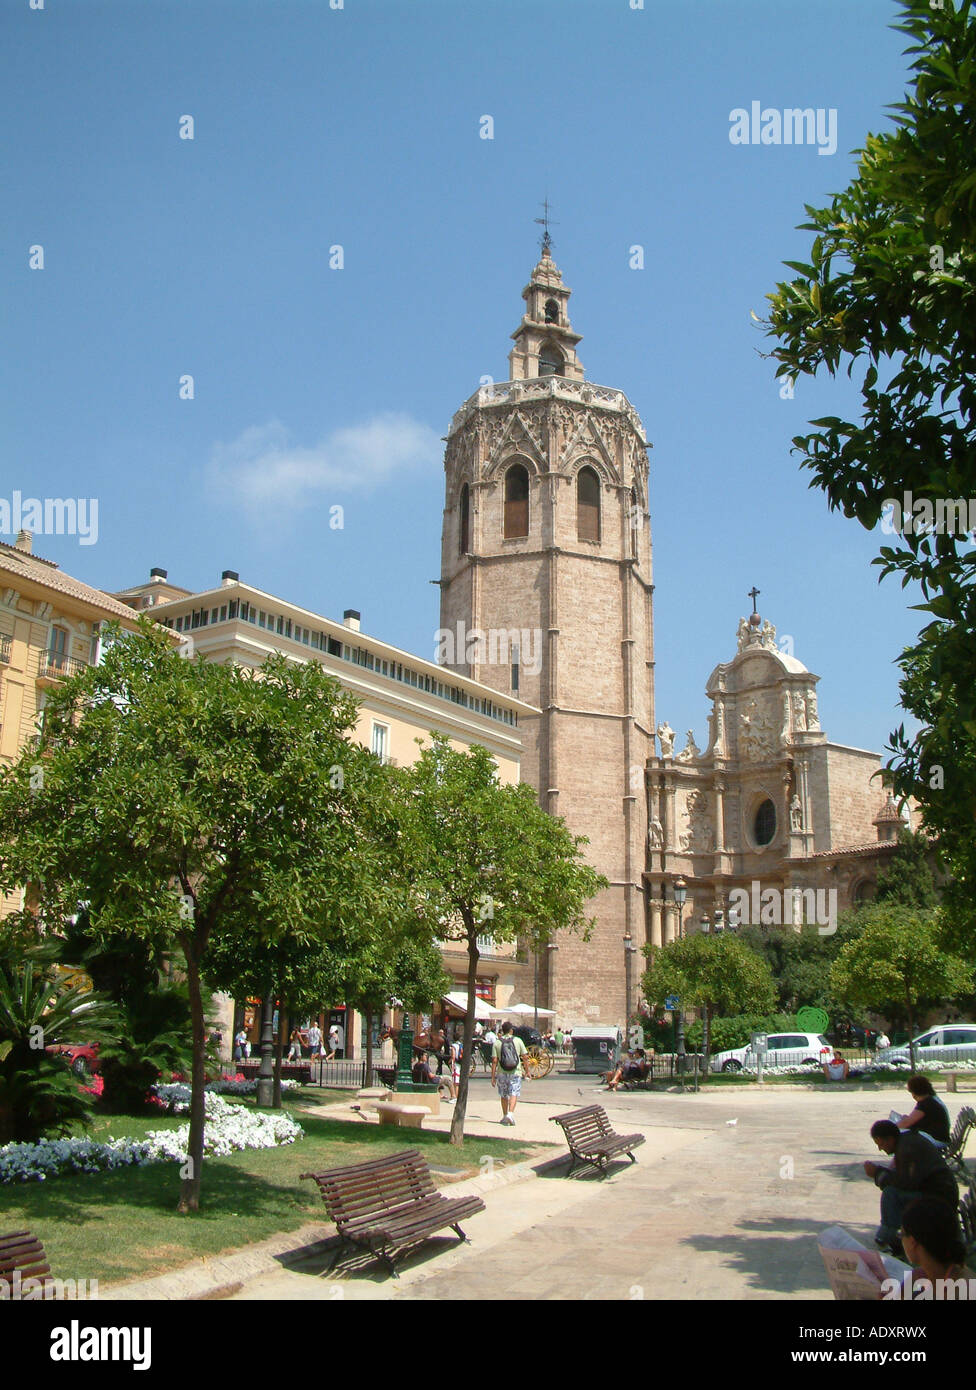 Cathedral, Plaza de la Reina, Valencia, Spain Stock Photo